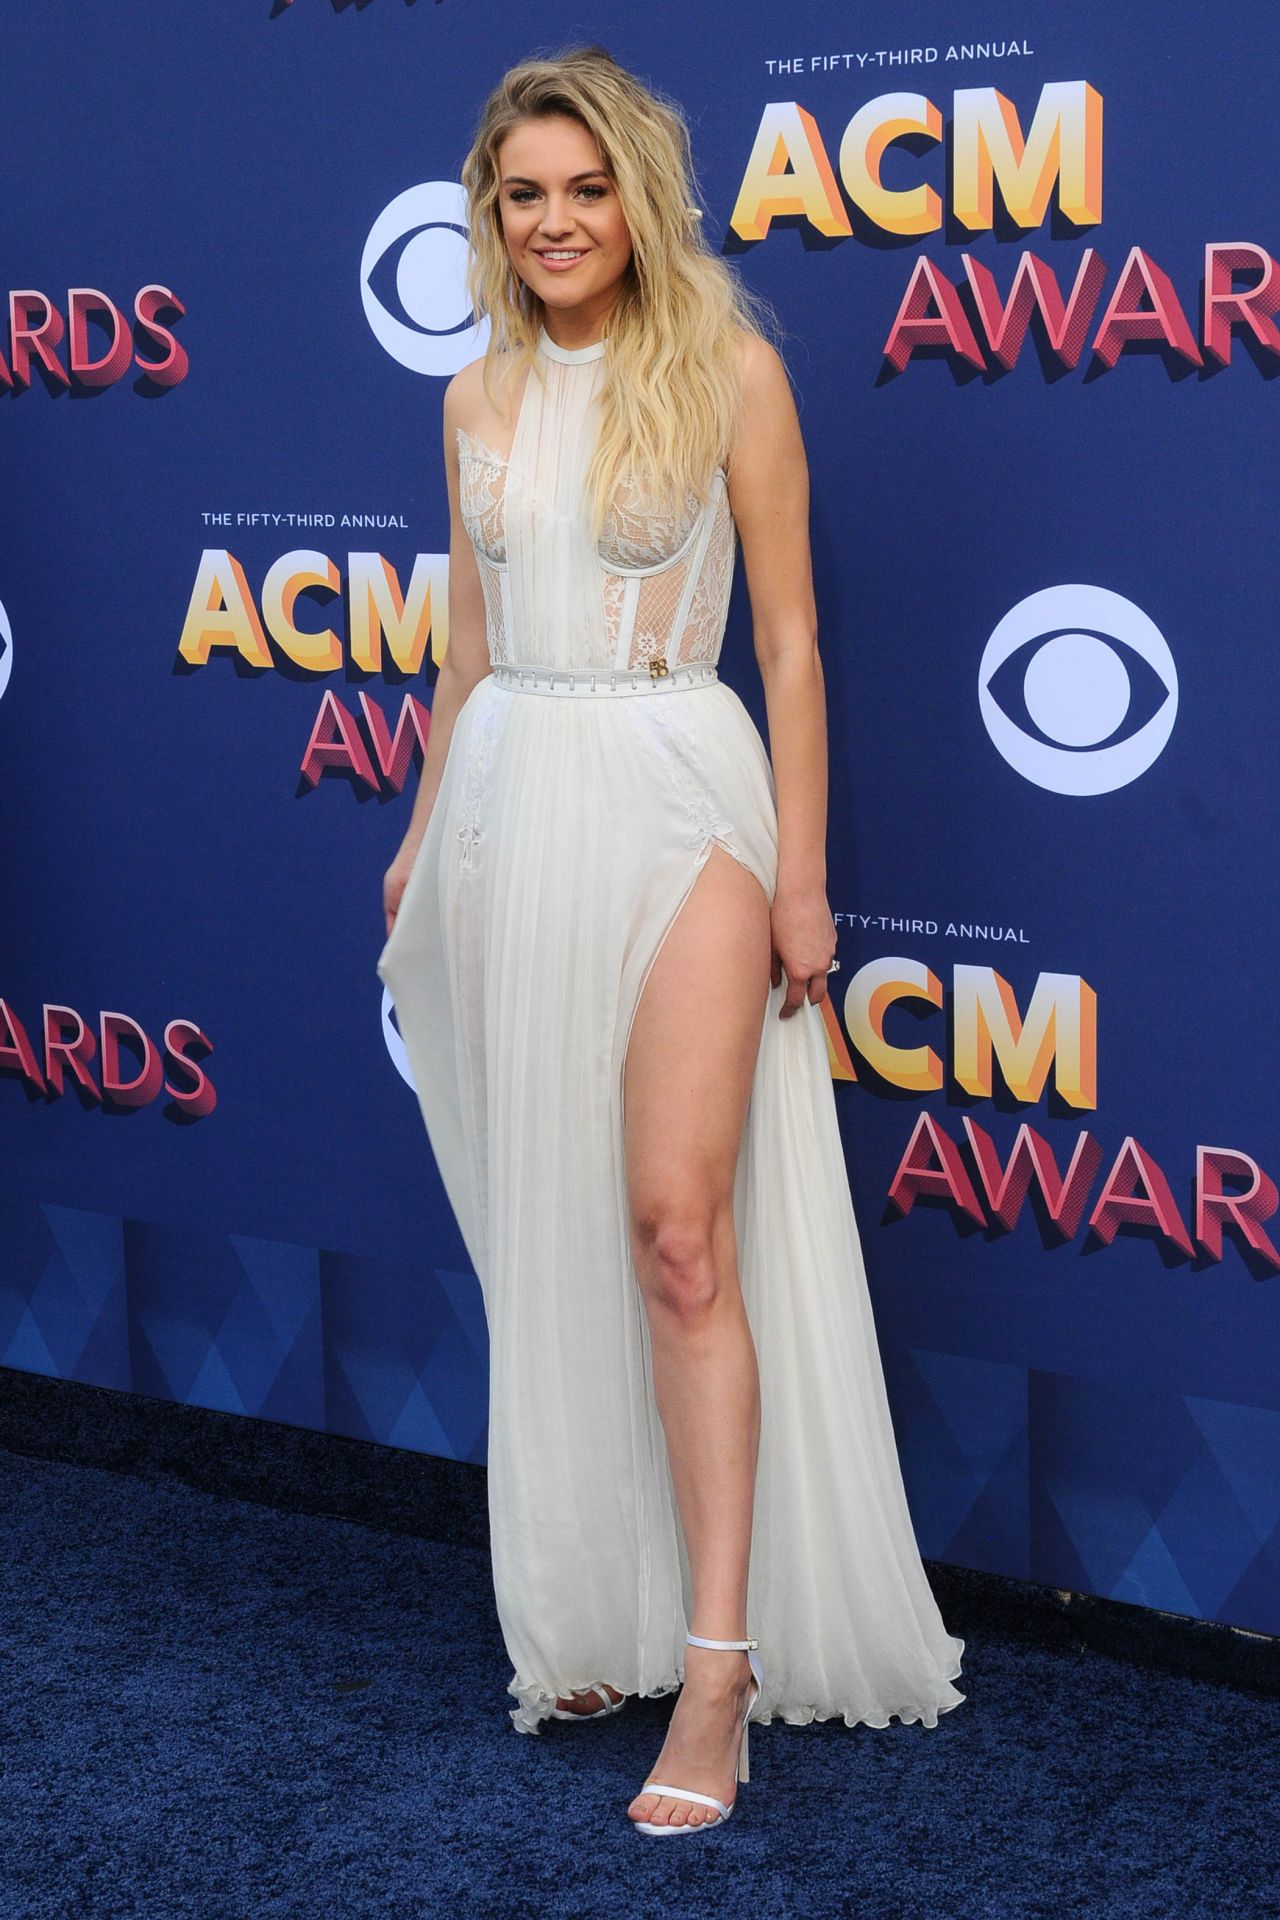 Kelsea Ballerini 2018 Academy Of Country Music Awards In